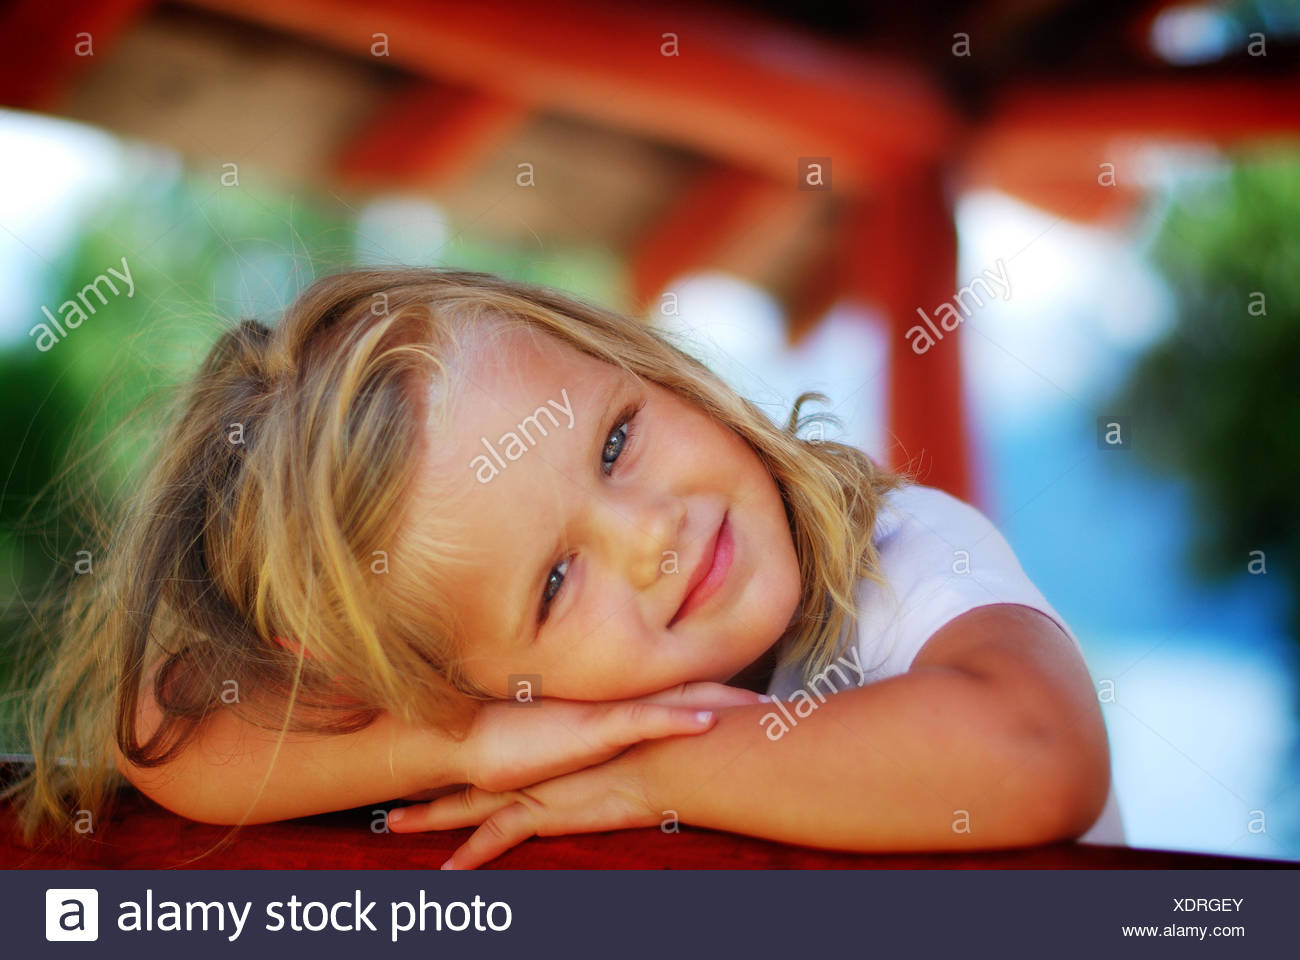 L'Argentine, Rio Negro, Portrait of little girl smiling Photo Stock